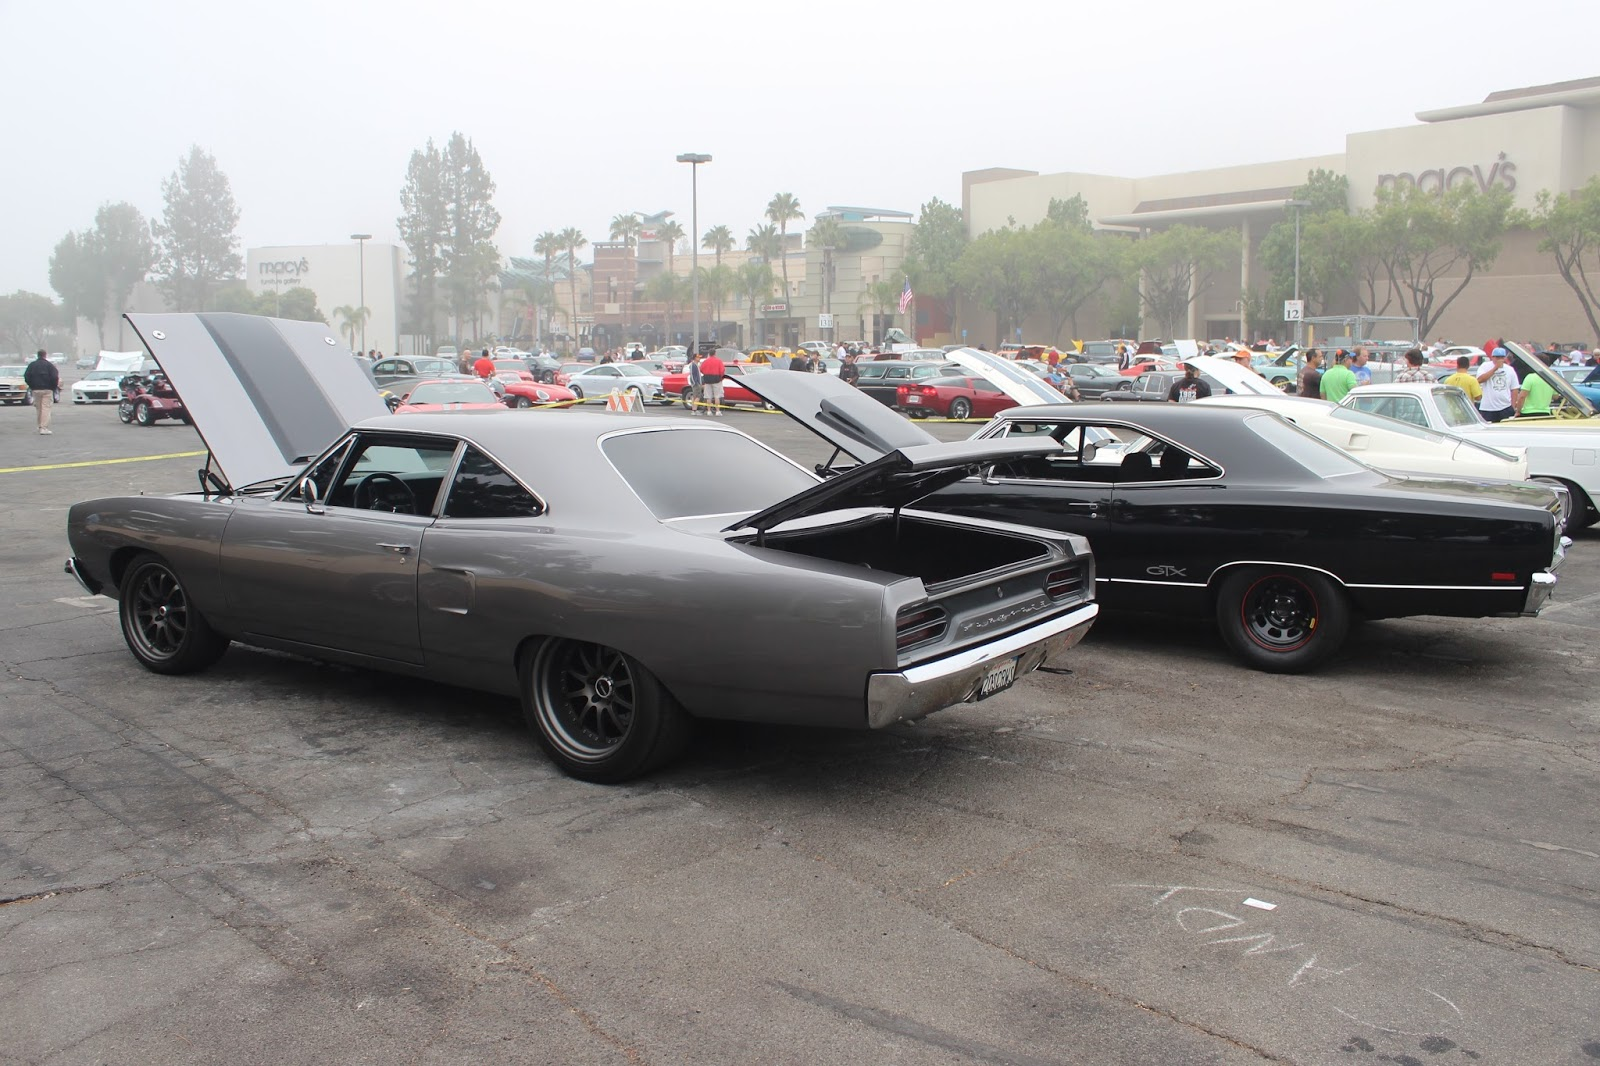 Covering Classic Cars : Muscle Car Marque at the August Super Car ...